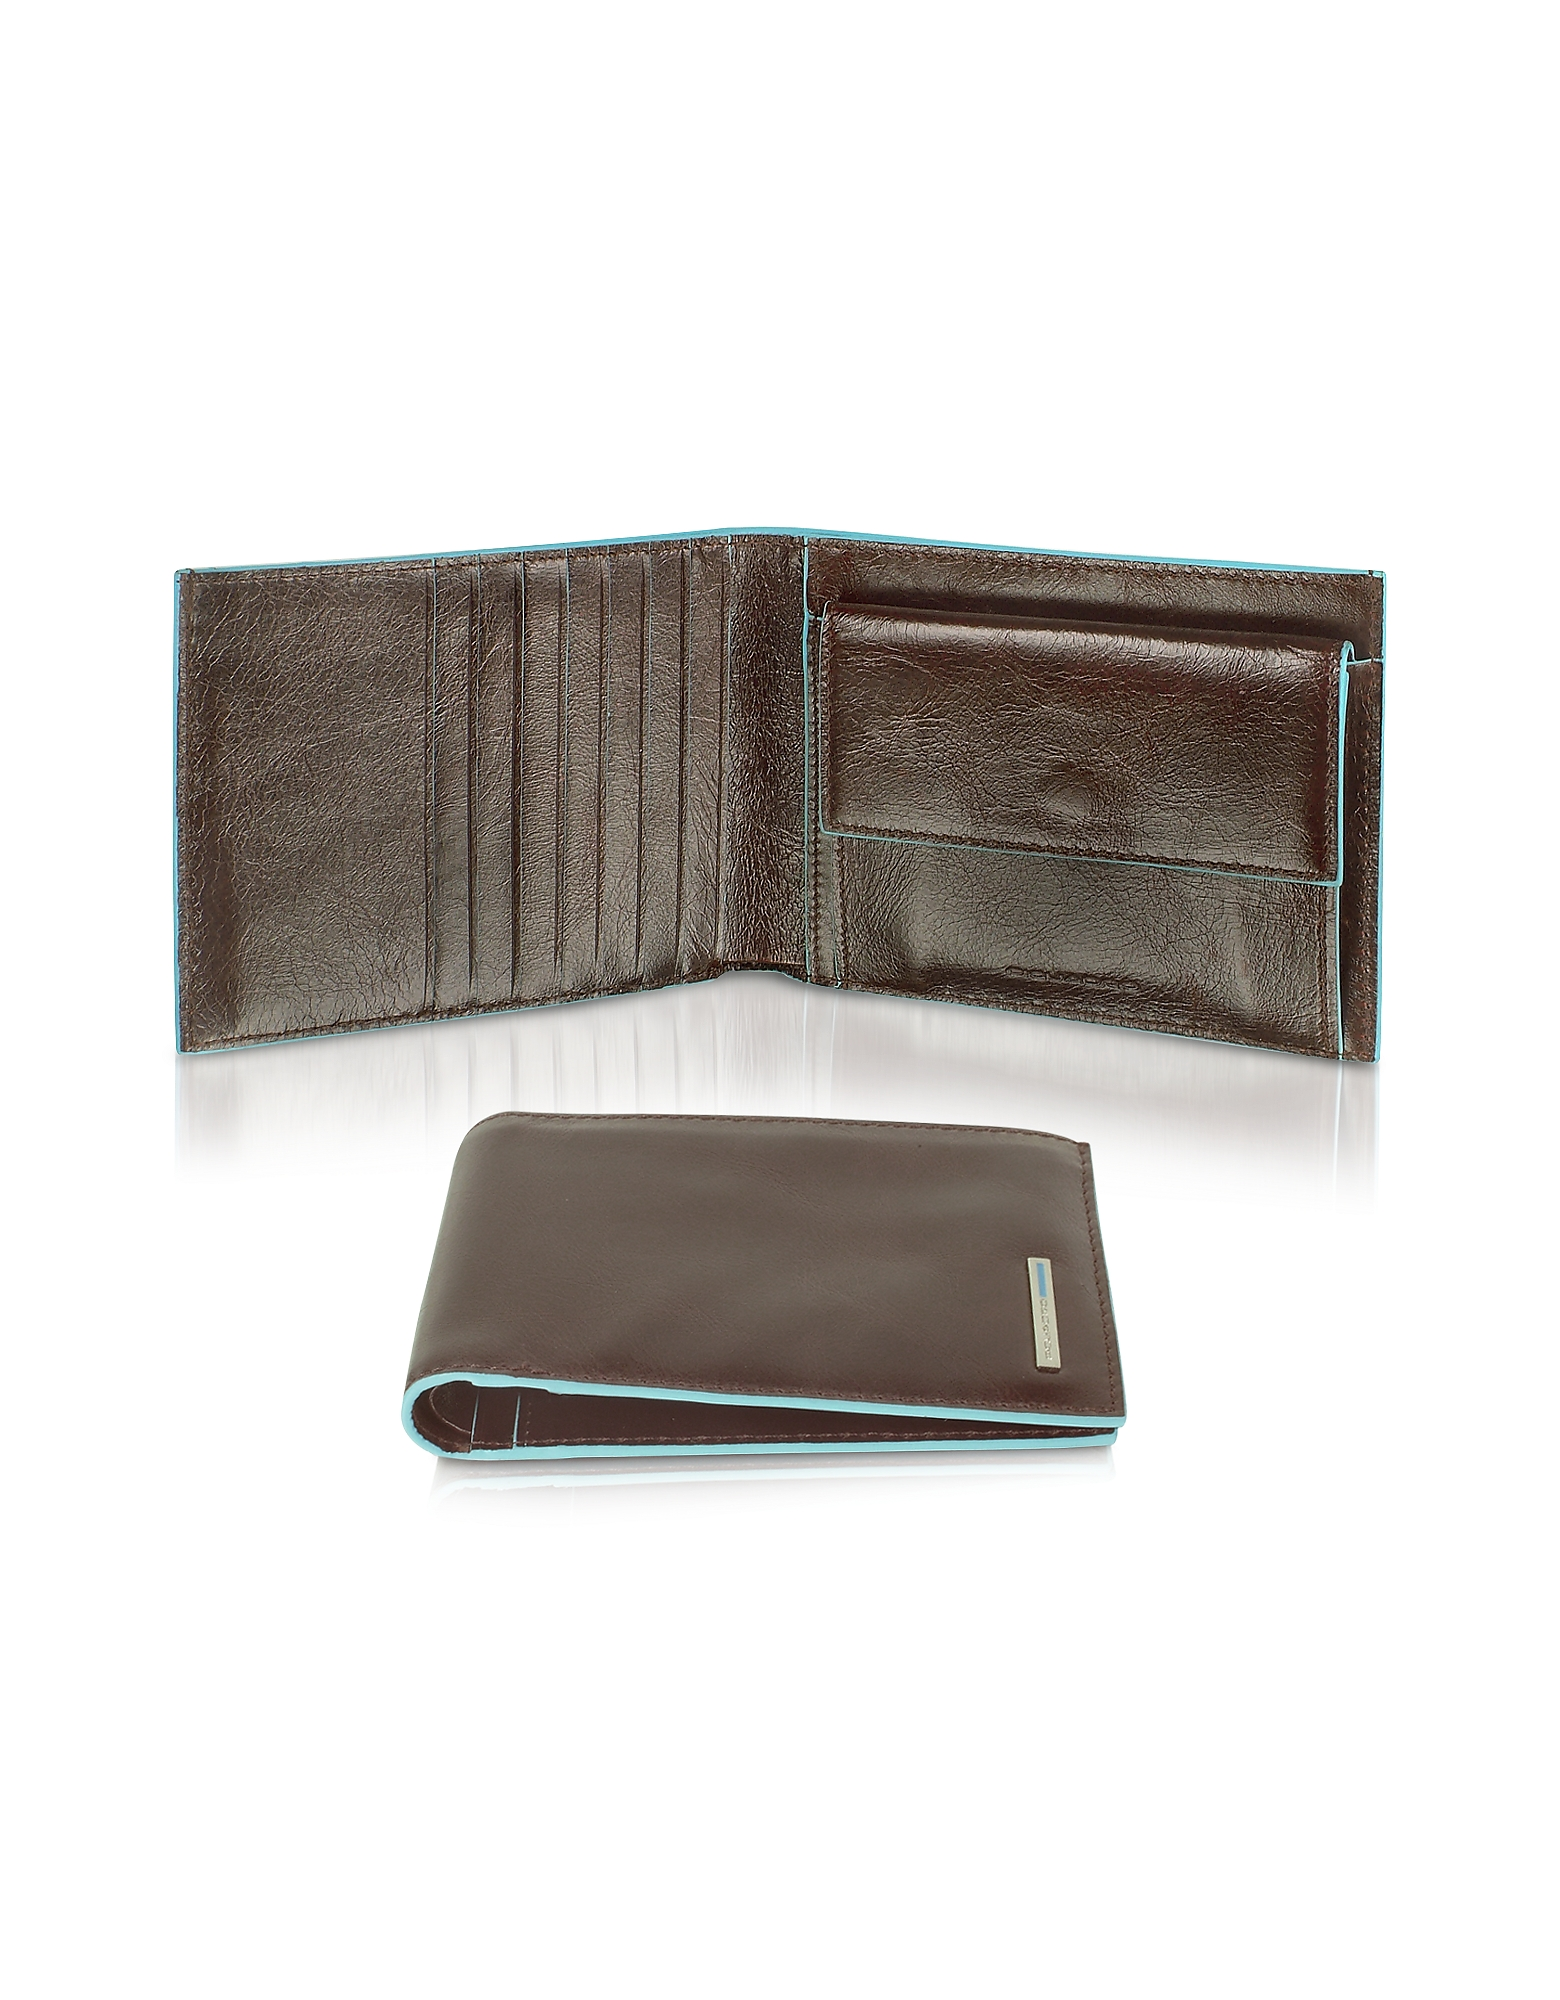 Piquadro Wallets, Blue Square-Men's Billfold Leather Wallet